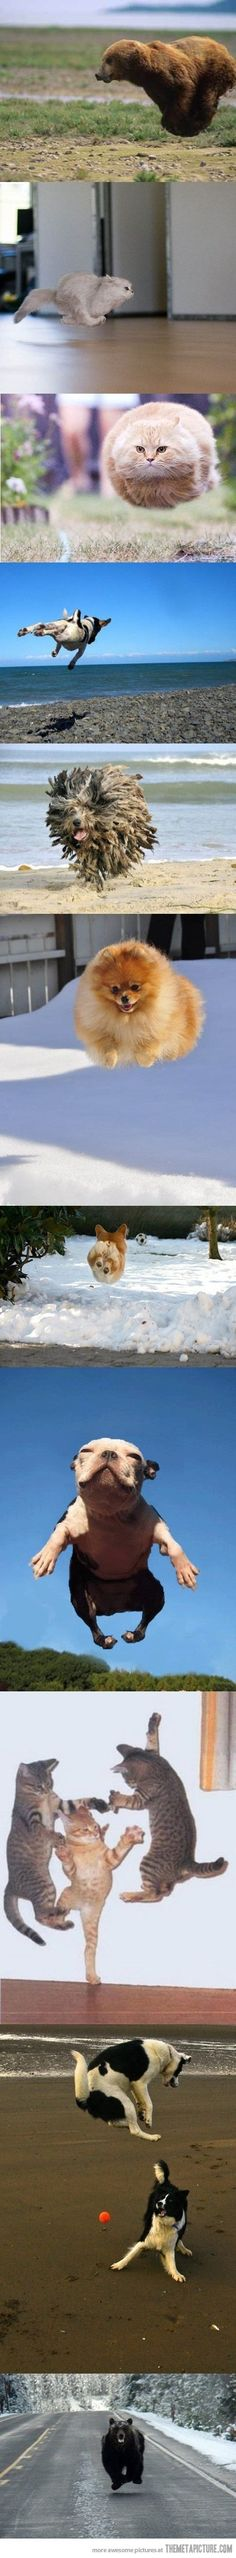 Hovering animals